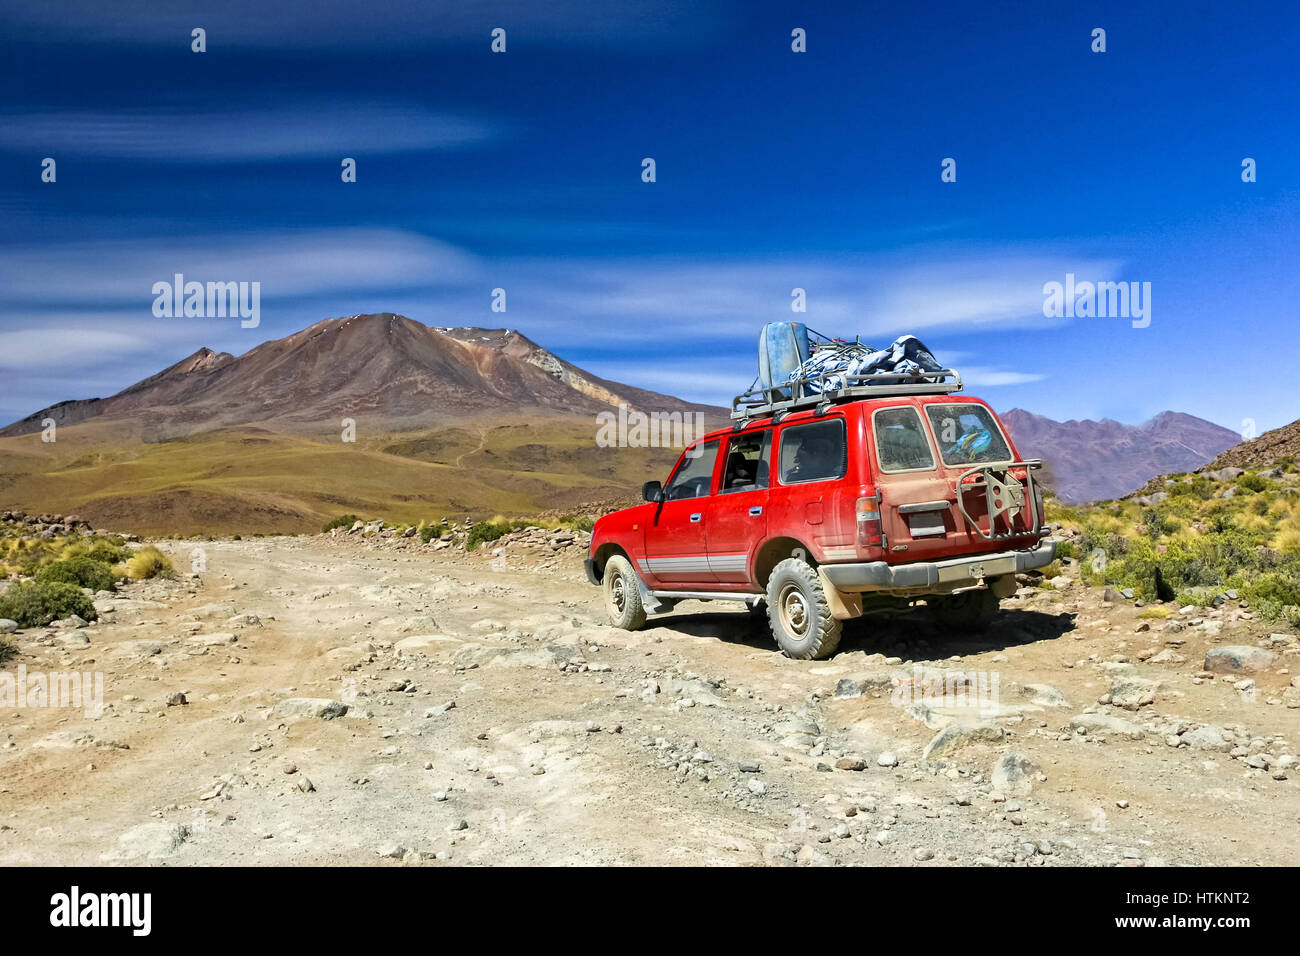 offroad car in bolivian desert - Stock Image